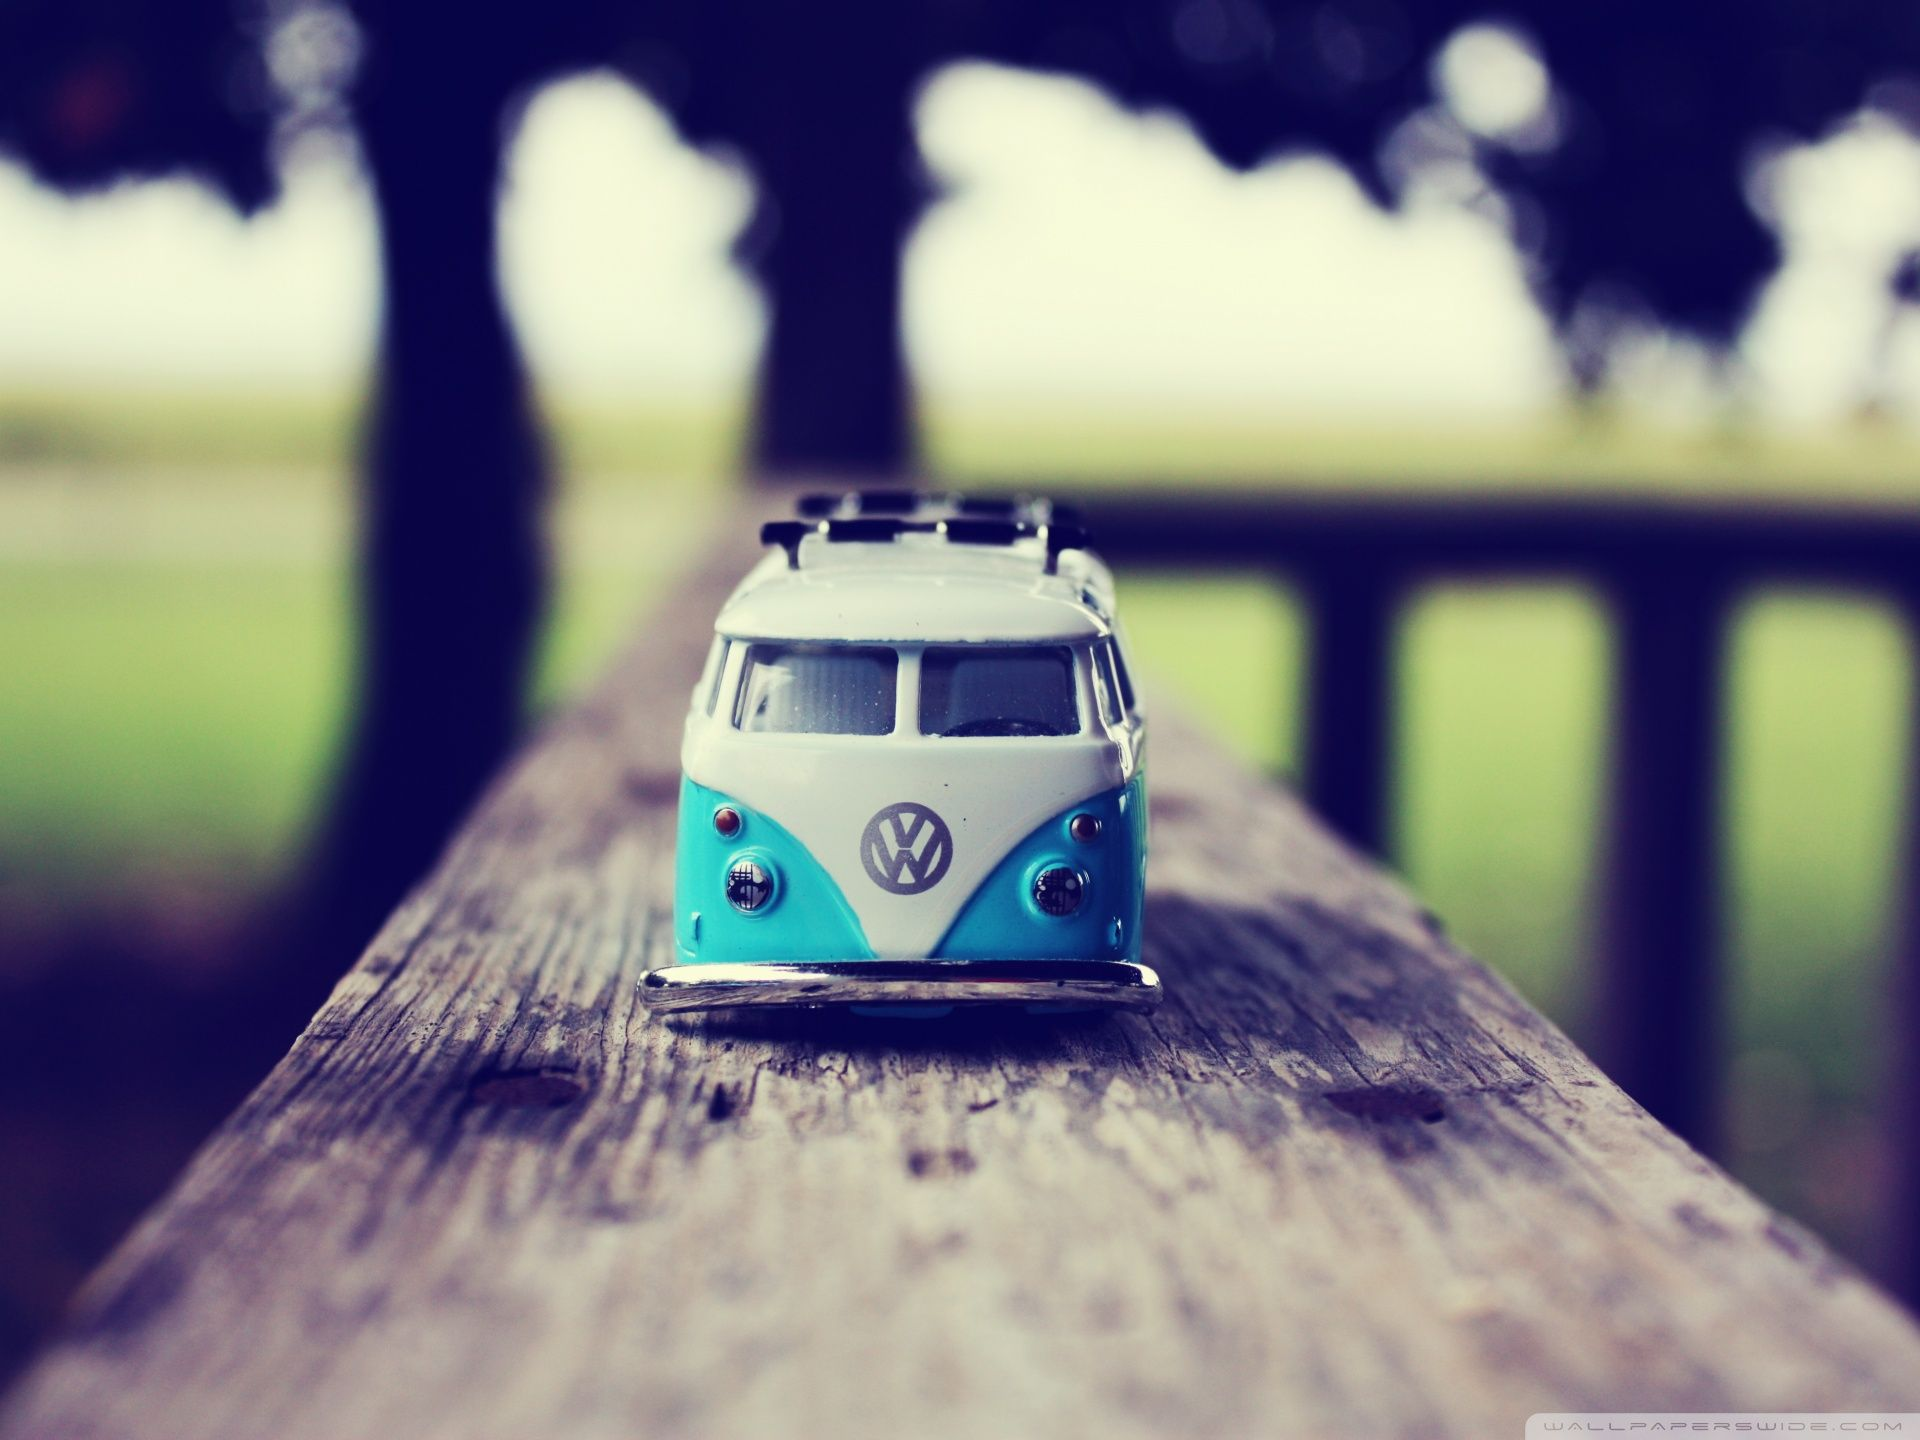 Vans iphone wallpaper tumblr - Little Volkswagen Bus Bulli Toy Wallpaper Iphone Backgroundsiphone Wallpaperstumblr